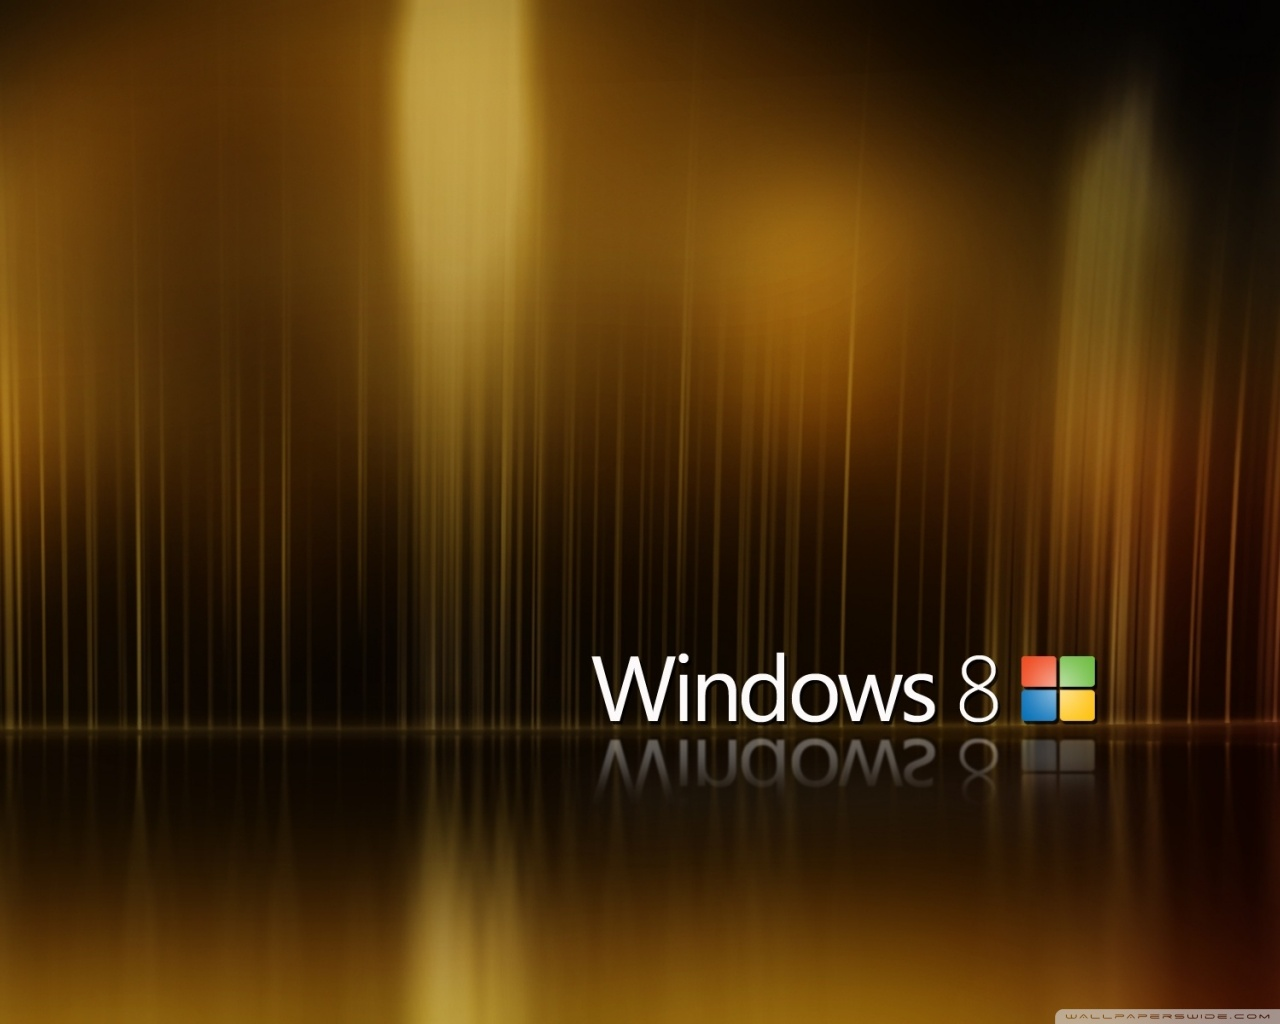 Microsoft_windows_8_wallpaper.jpg